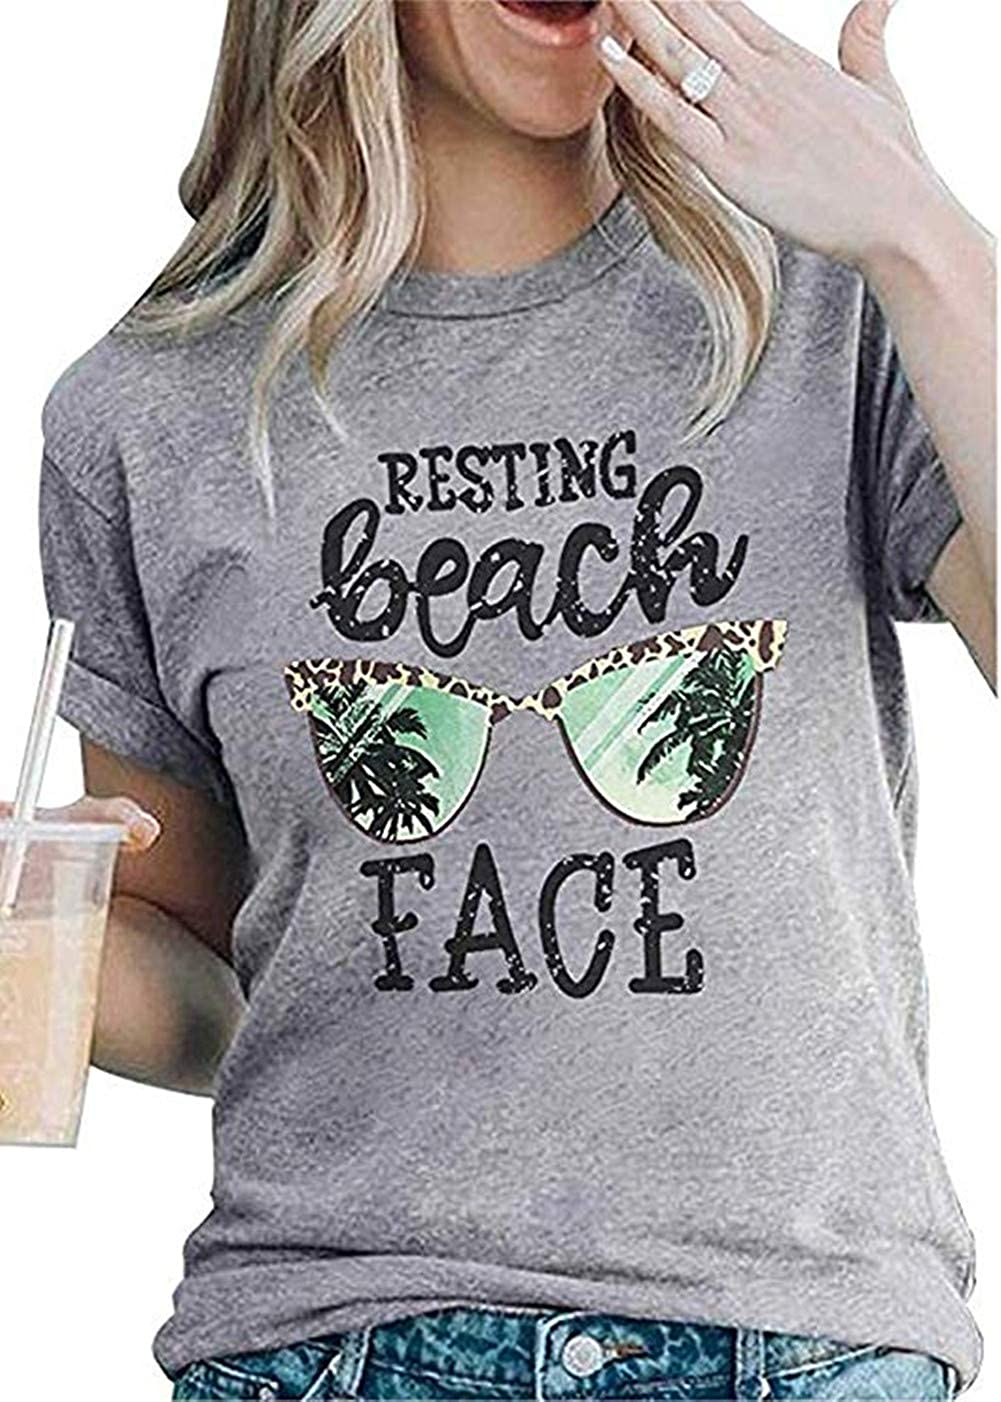 Resting Beach Face T-Shirt Women Funny Leopard Sunglasses Graphic Tees Top Short Sleeve Vacation Tops Shirt